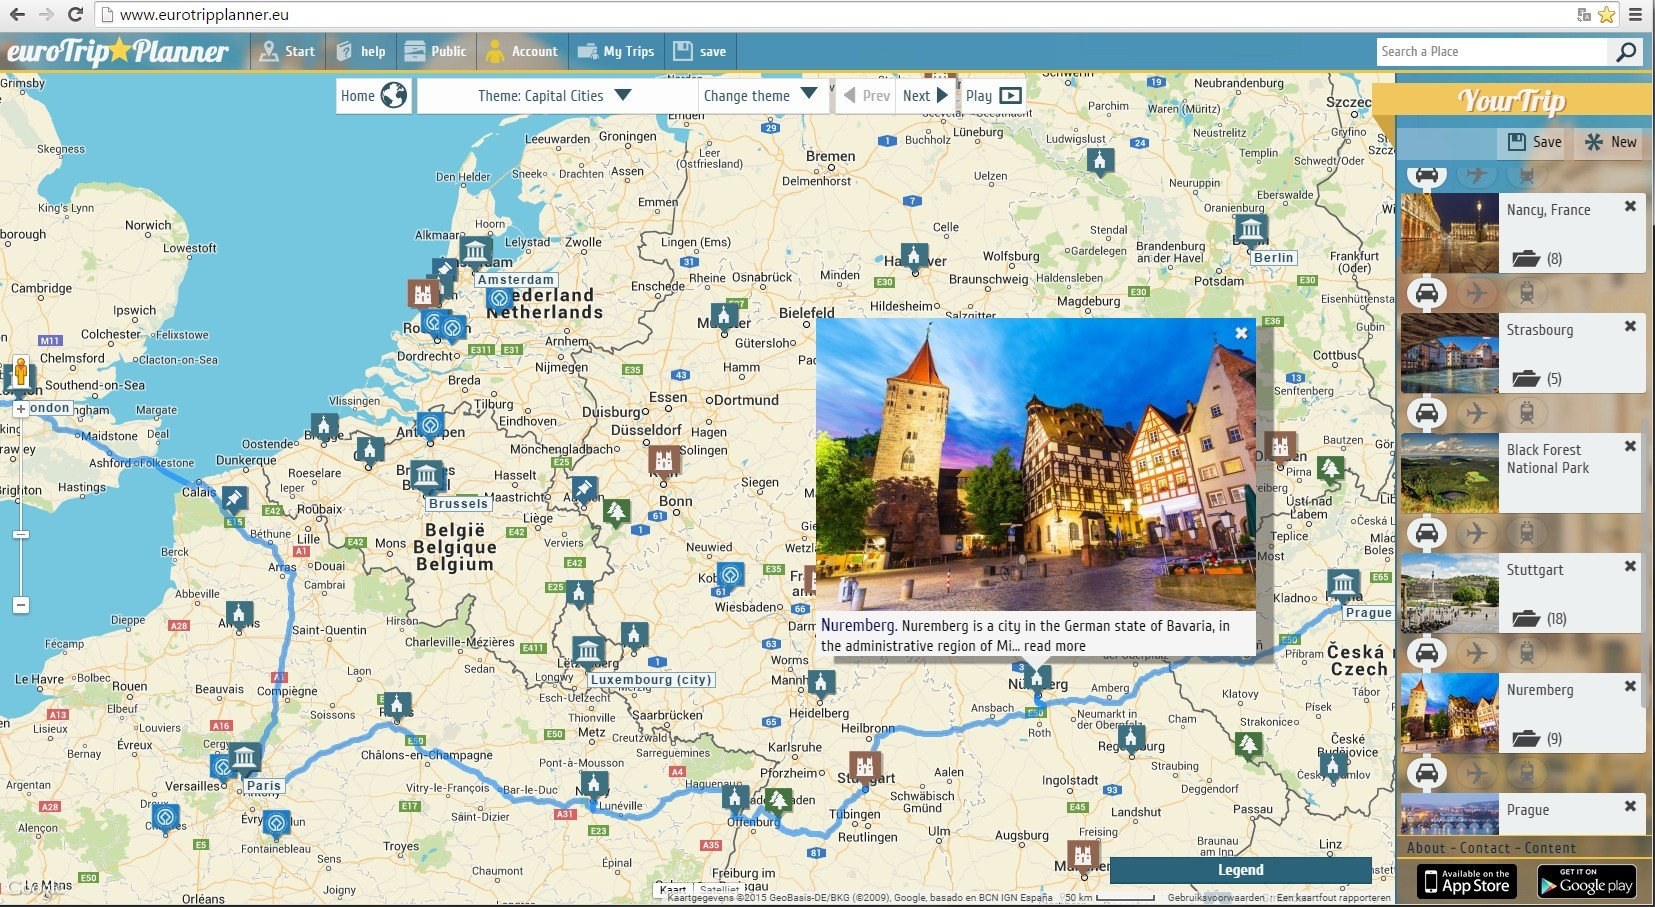 eurotrip planner alternatives and similar apps and websites